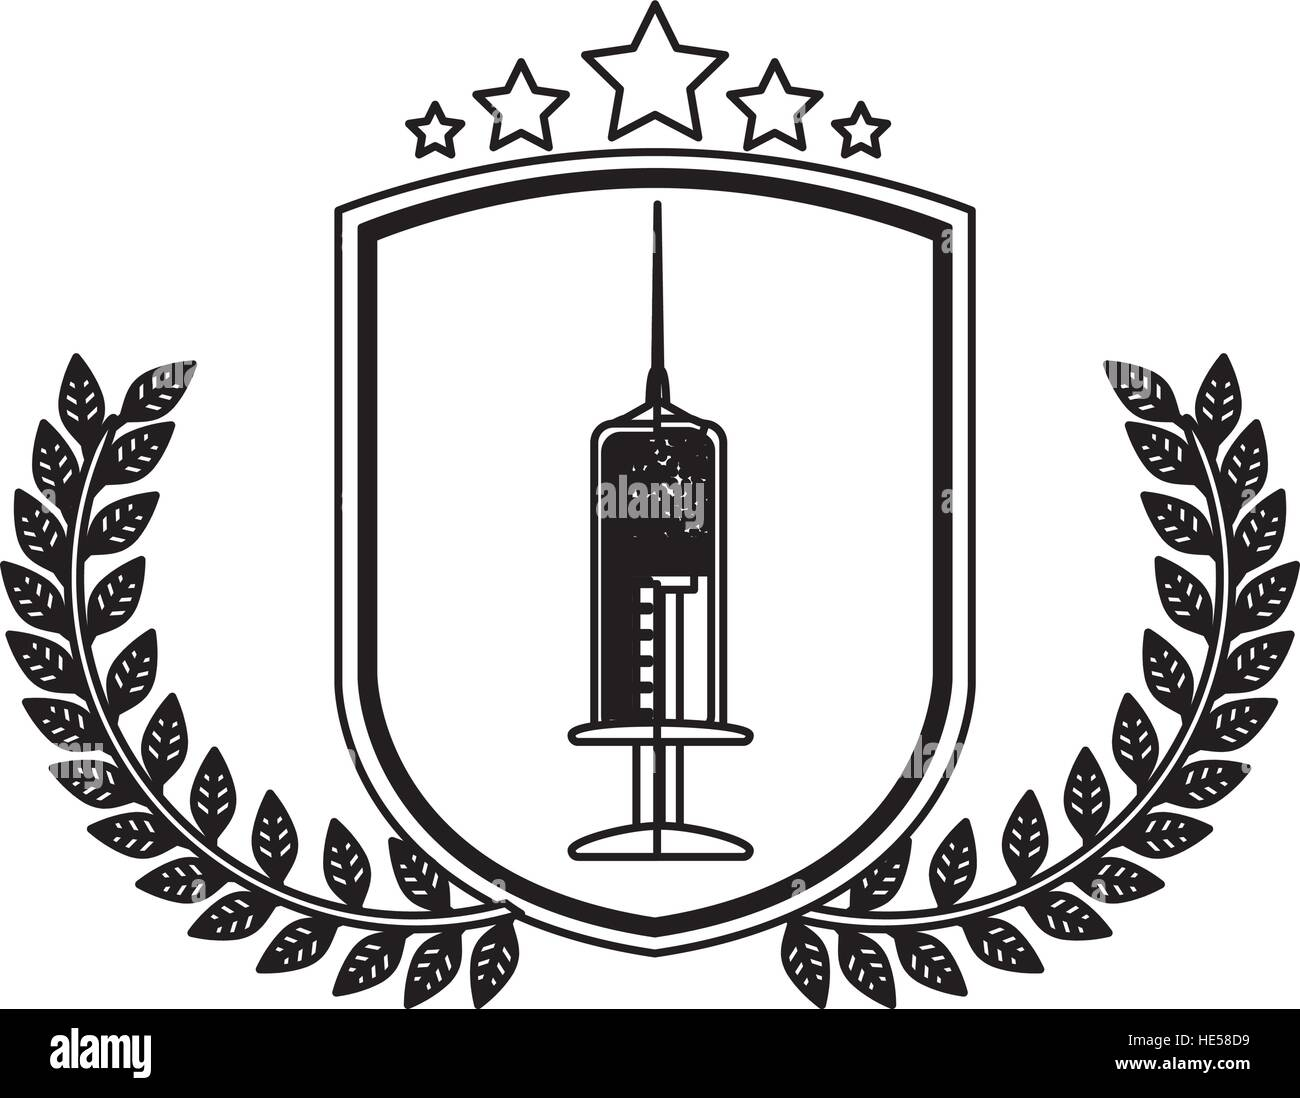 Isolated injection design - Stock Vector